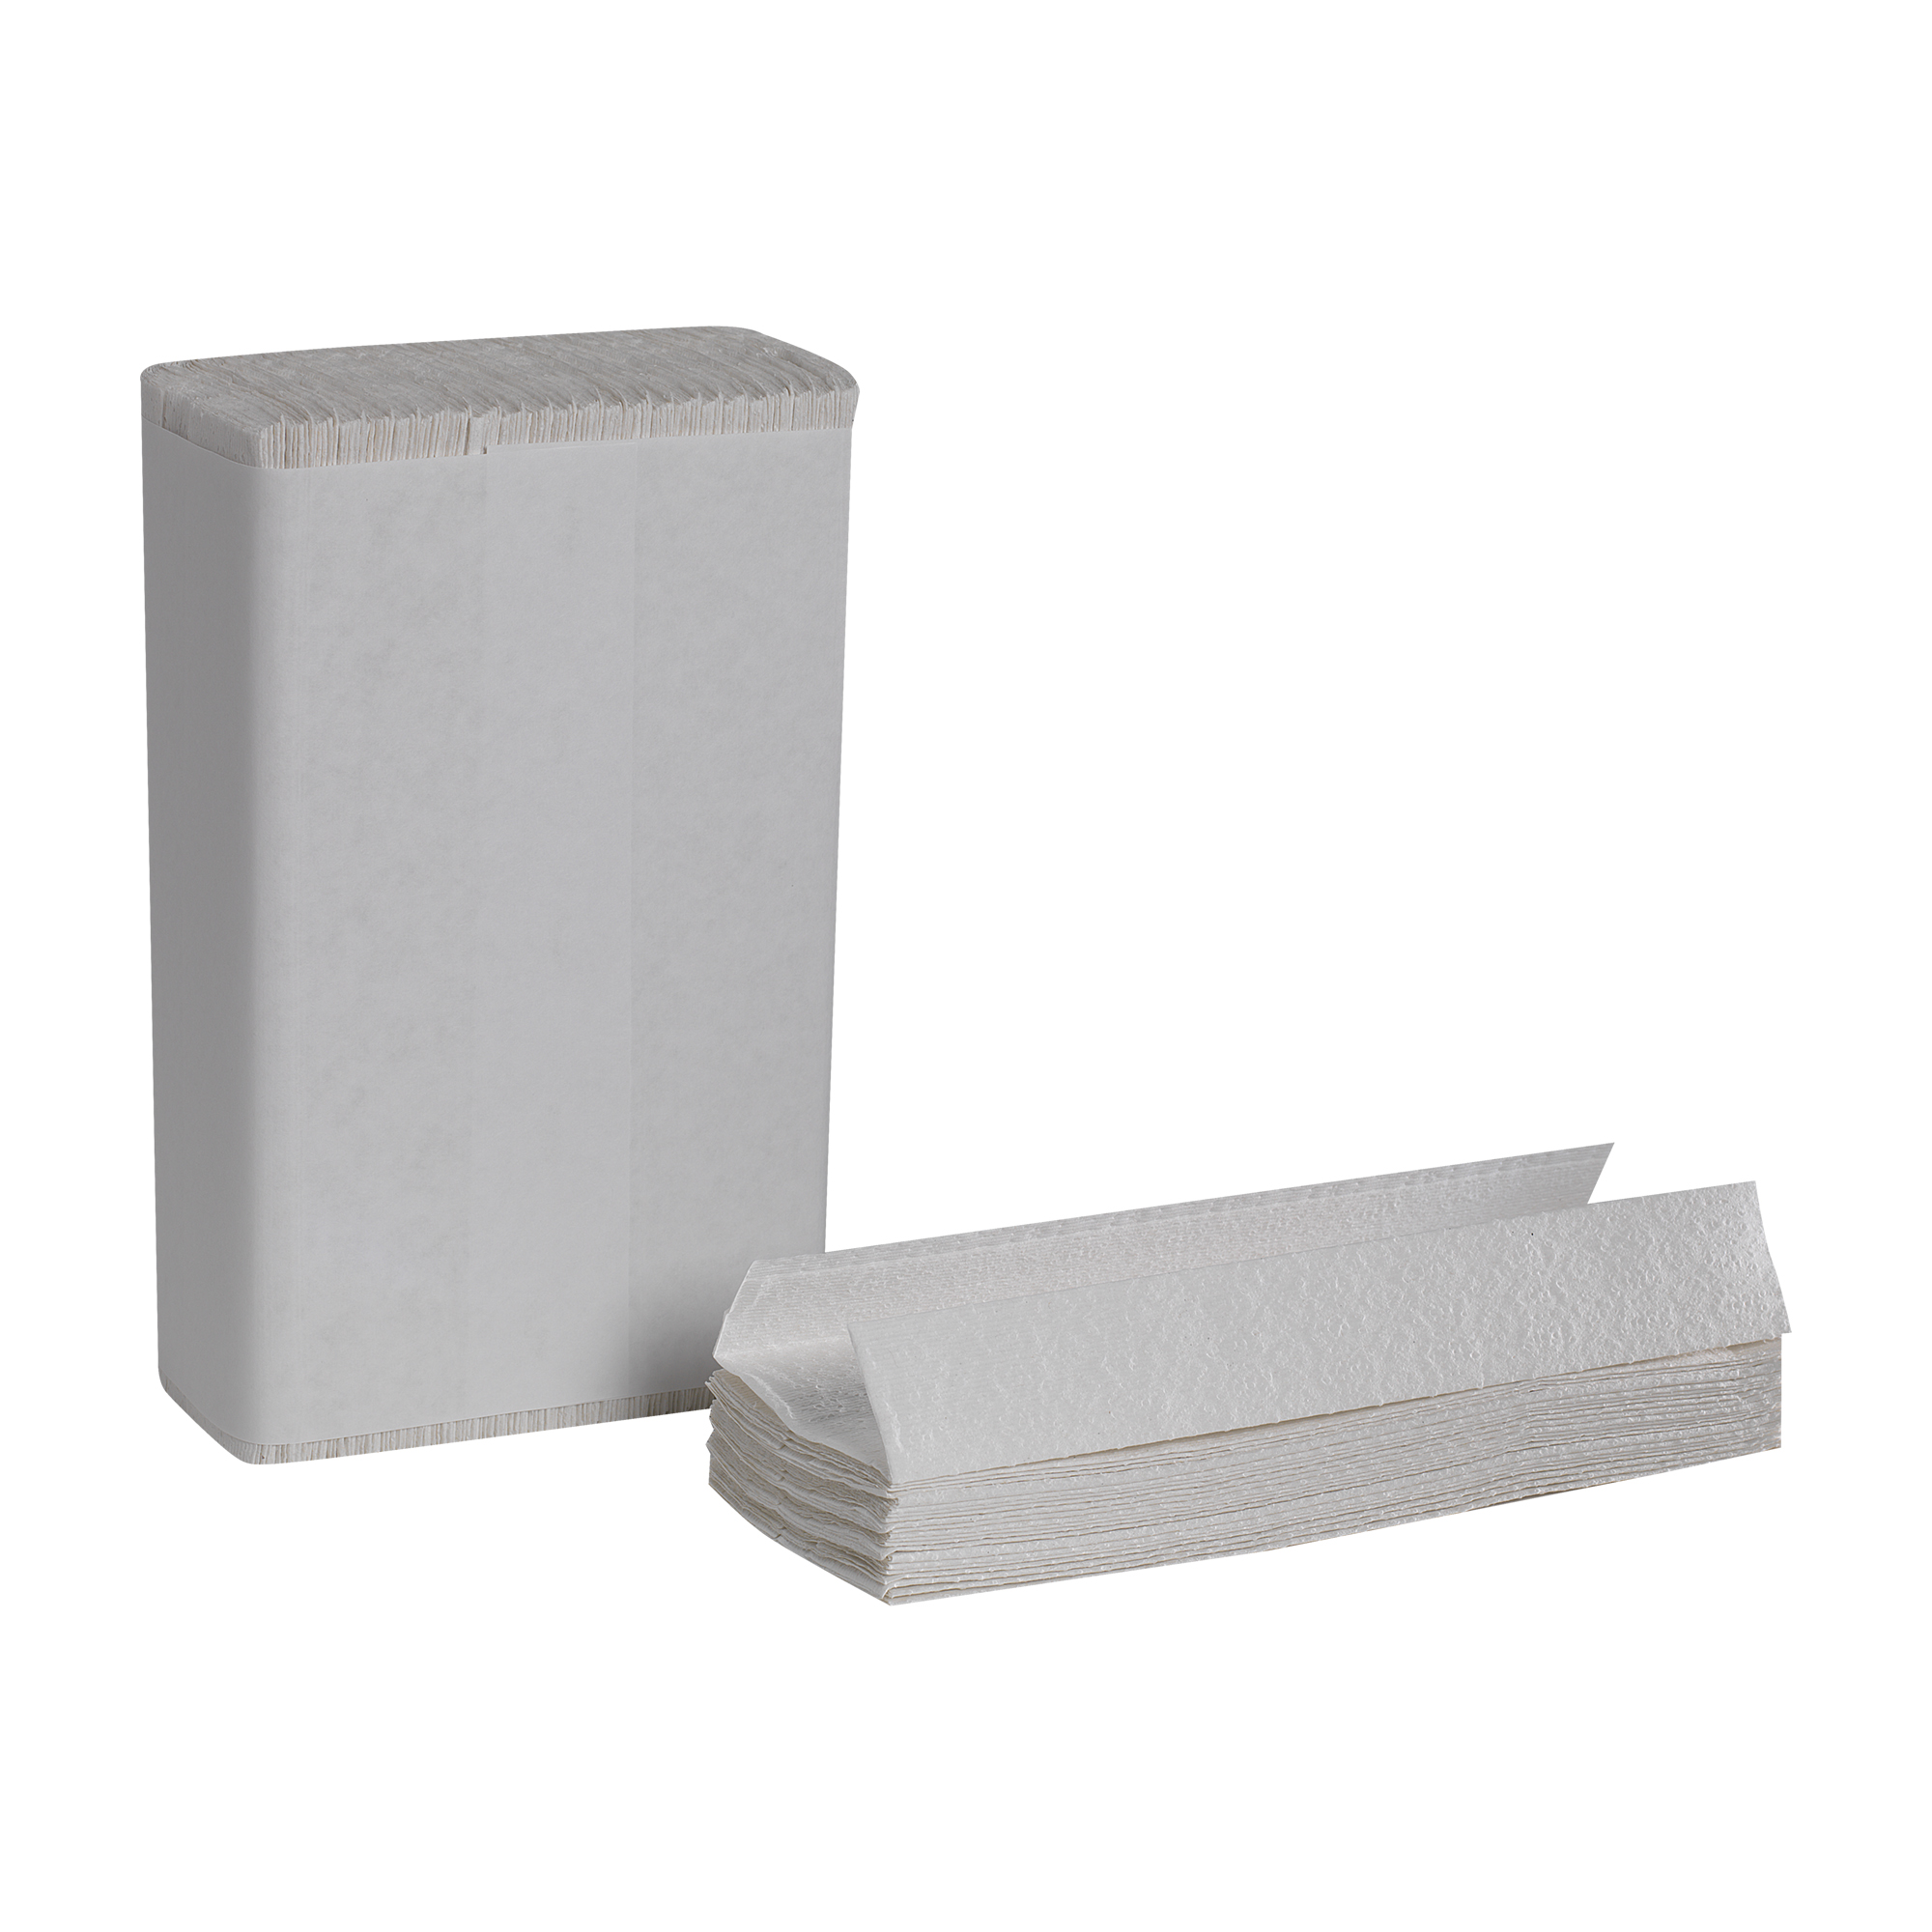 Pacific Blue Select™ (23000) Premium 2-Ply C-Fold Paper Towels (previously  branded Signature®) by Georgia-Pacific 3a3c25b8c65